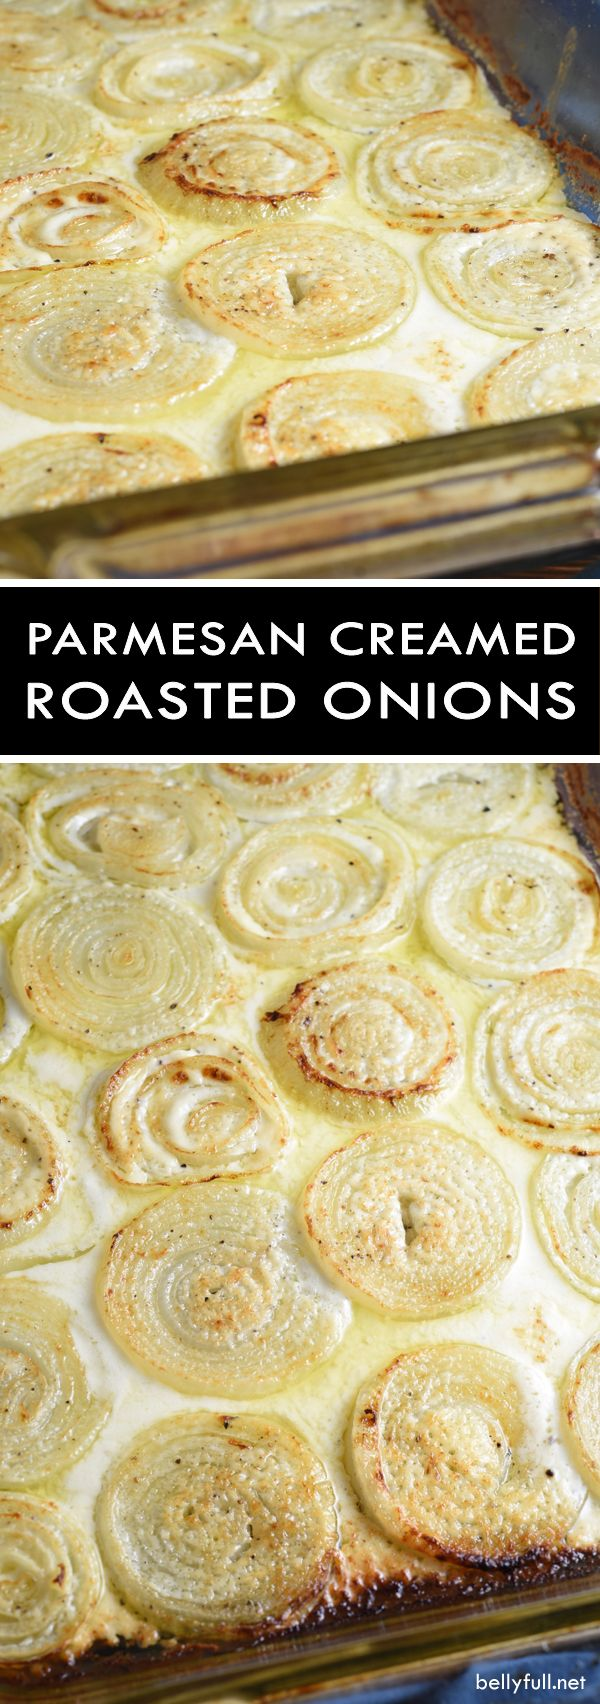 Roasted Parmesan Creamed Onions - sliced onionsare roasted in a Parmesan, cream, and wine bath making every bite absolutely luscious!